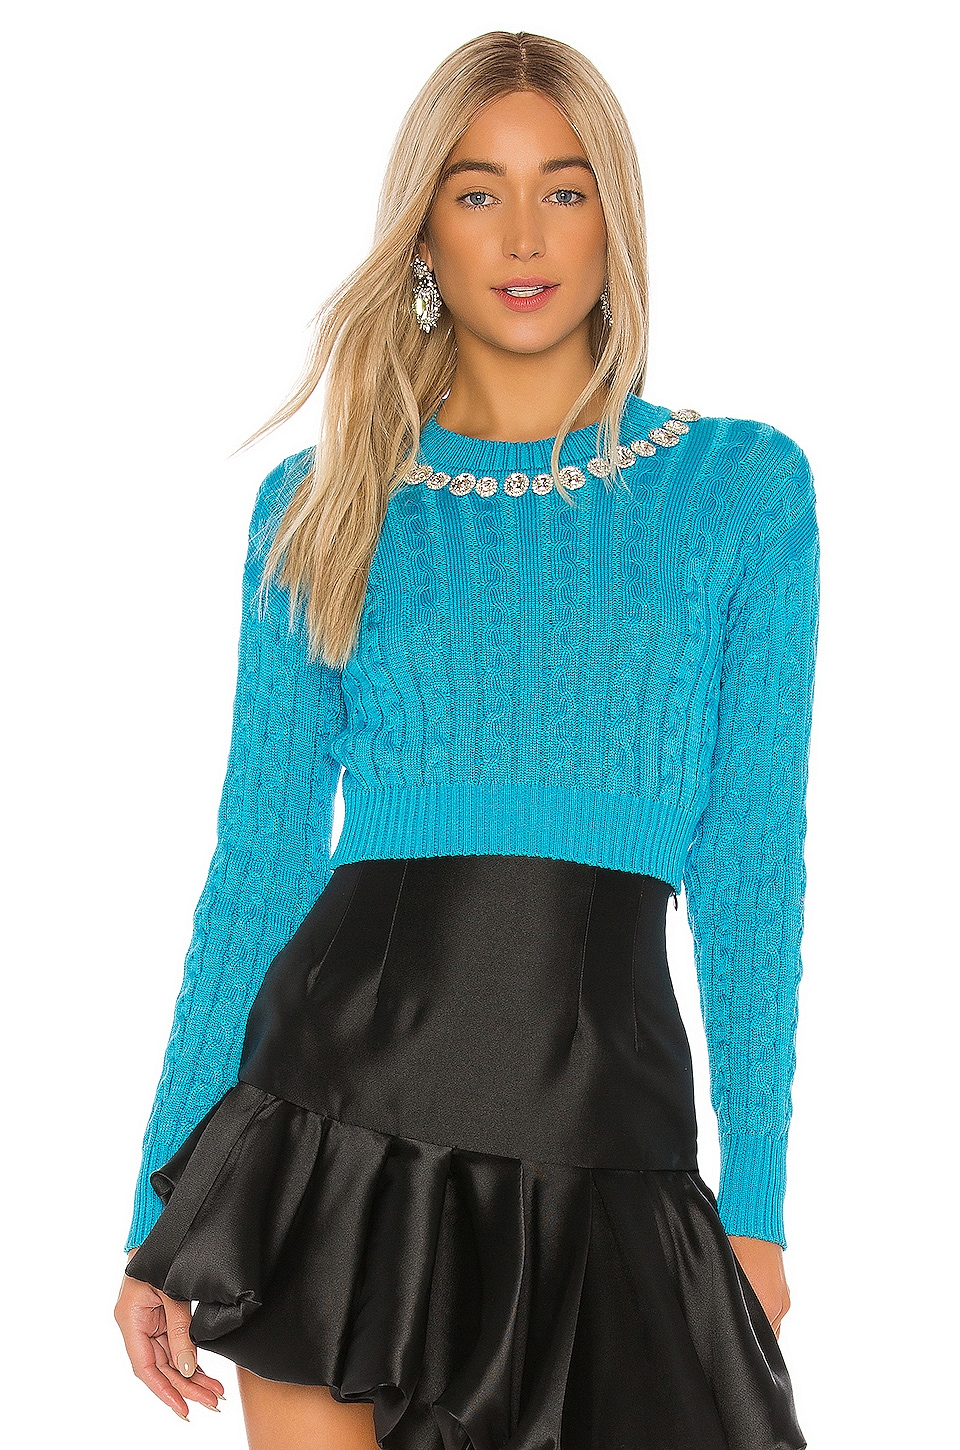 GIUSEPPE DI MORABITO Cropped Cable Knit Sweater in Light Blue